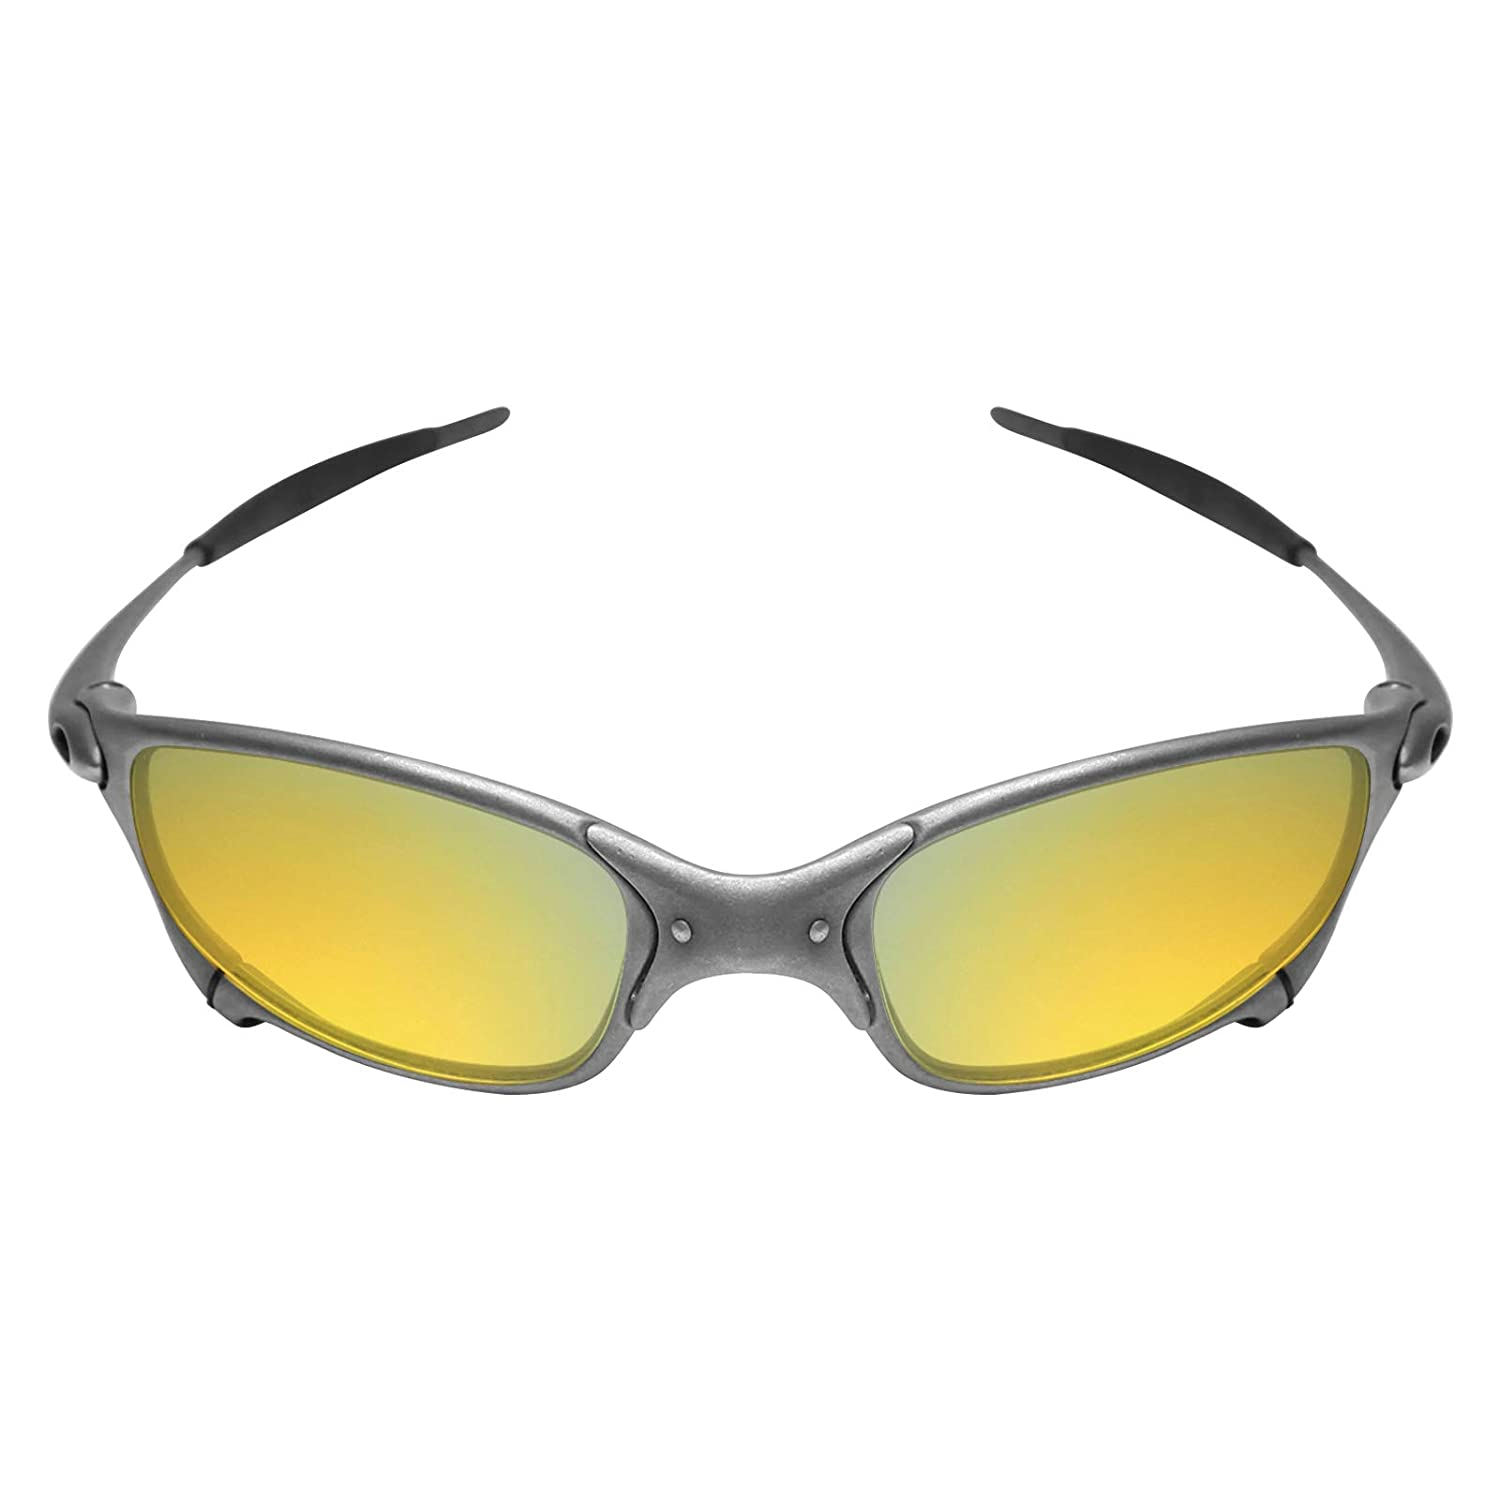 32550d288 Mryok Replacement Lenses for Oakley Juliet Sunglasses - Rich Options:  Amazon.ca: Clothing & Accessories